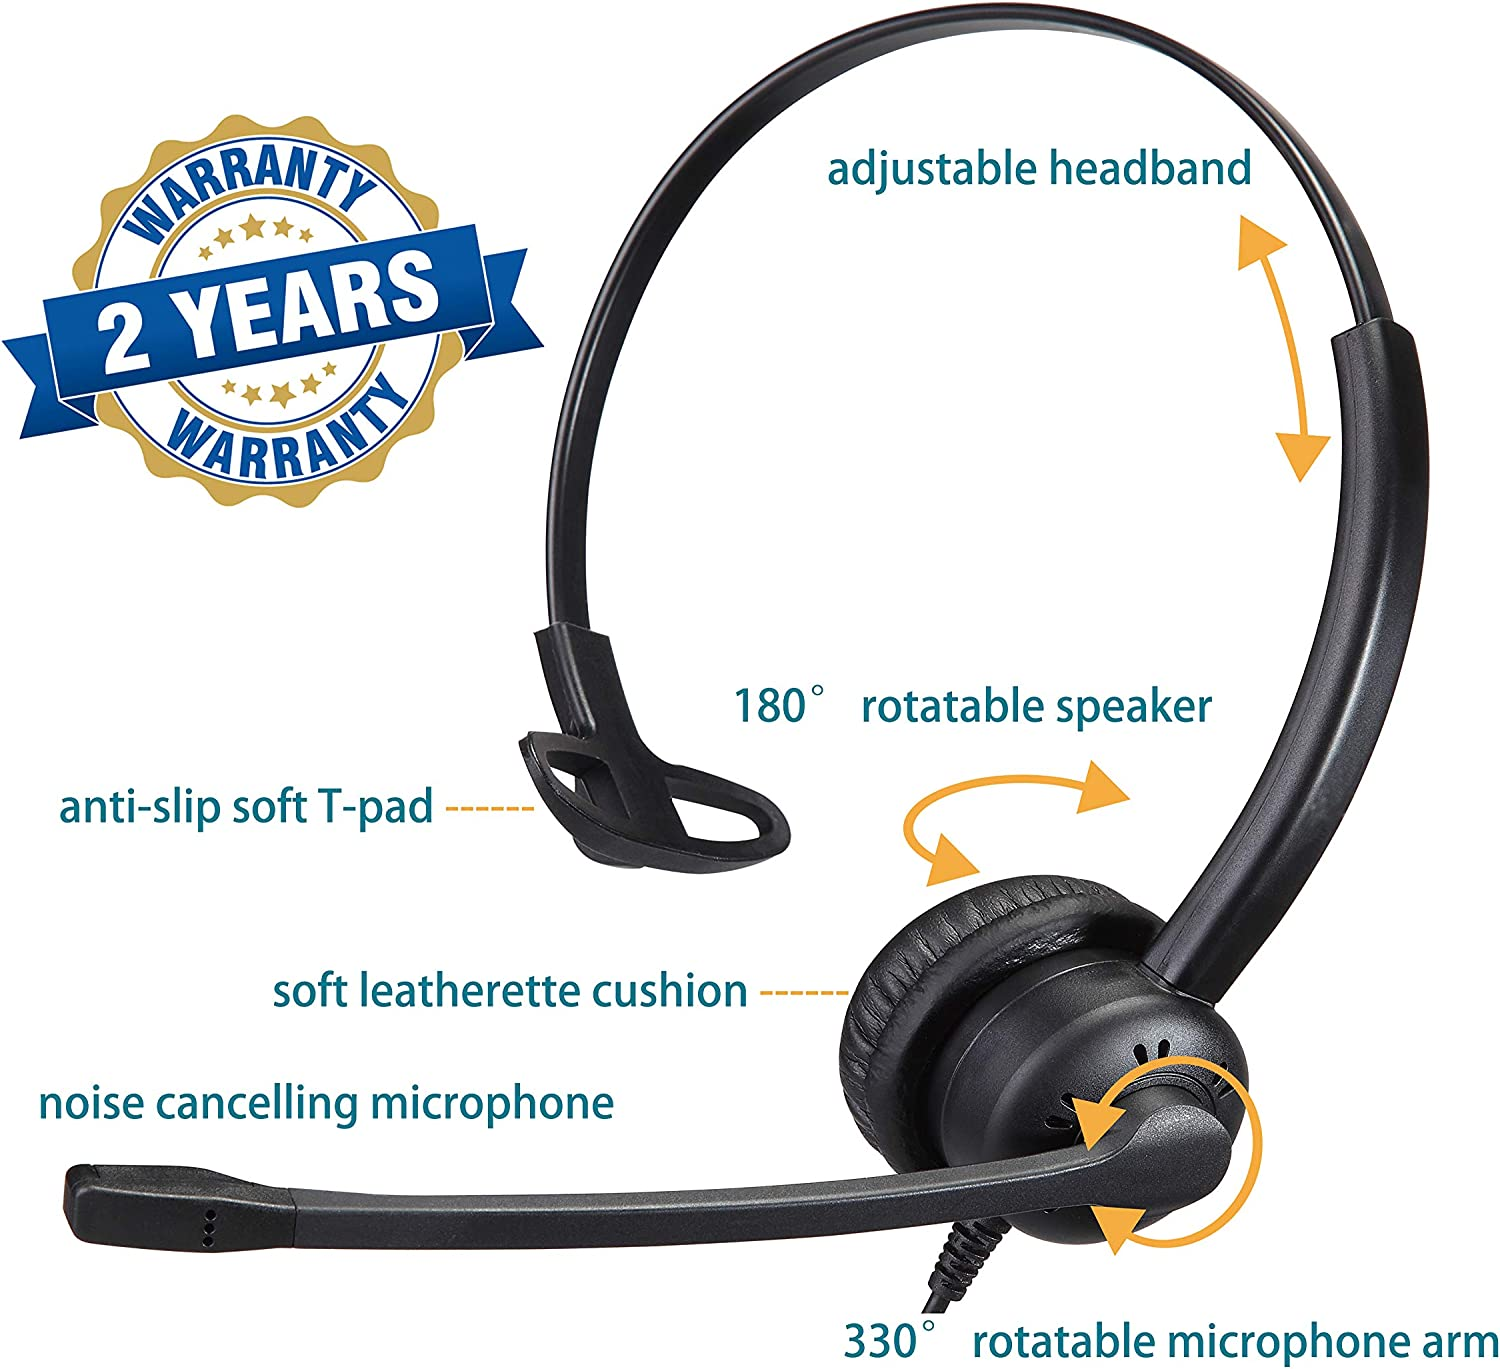 Yexatel USB Headset with Microphone Noise Cancelling for PC Computer for Zoom Skype Video Conferencing Online Meeting Remote Work Speech Recognition Inline Mute Button Volume Control Gold Single Ear